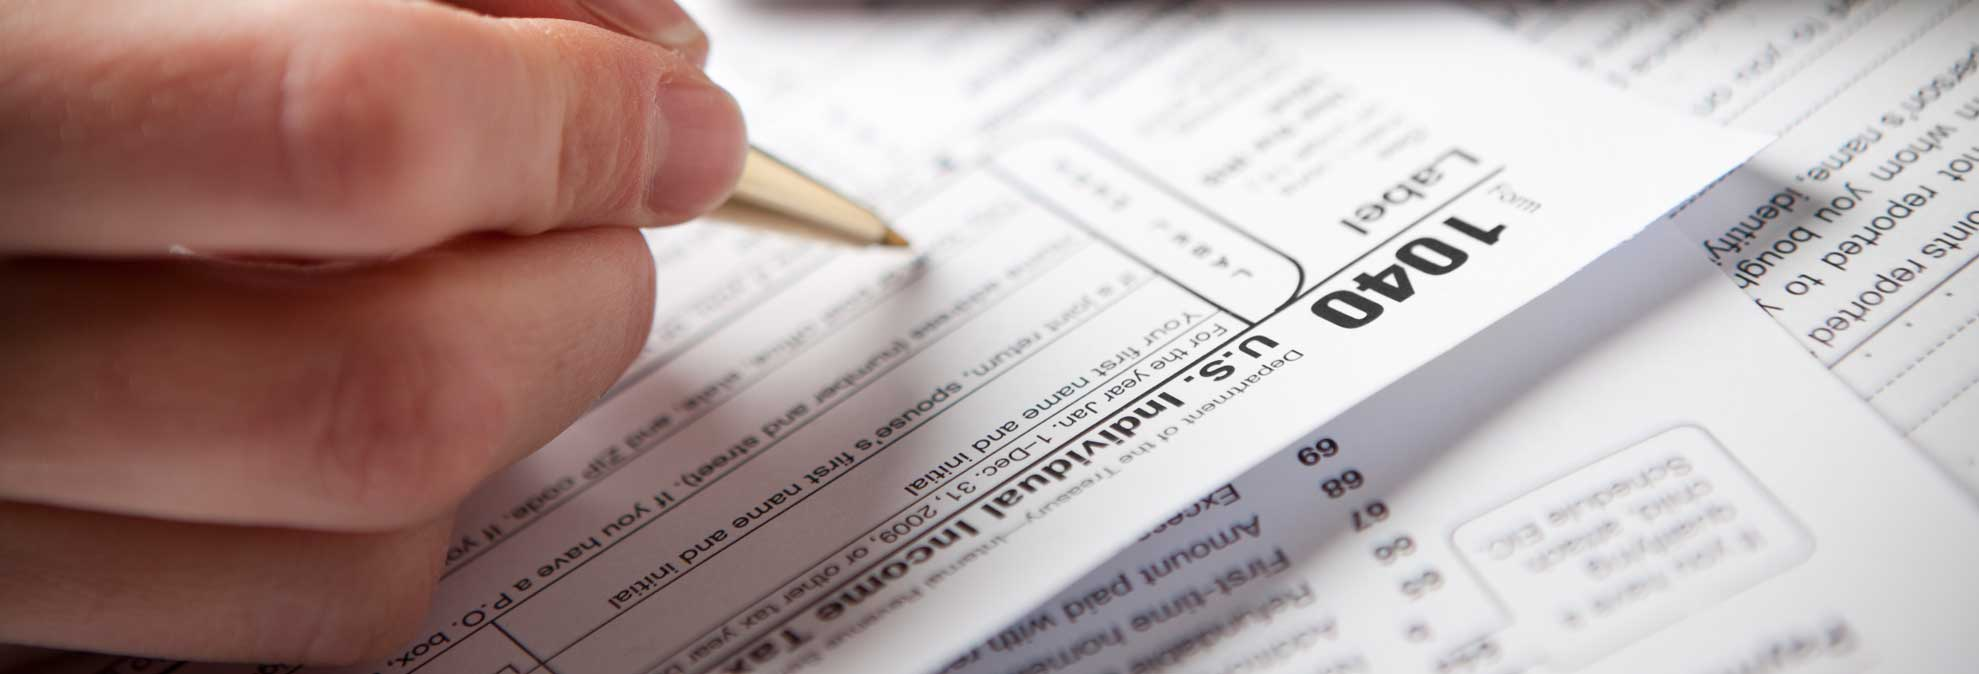 How To Avoid A Tax Scam